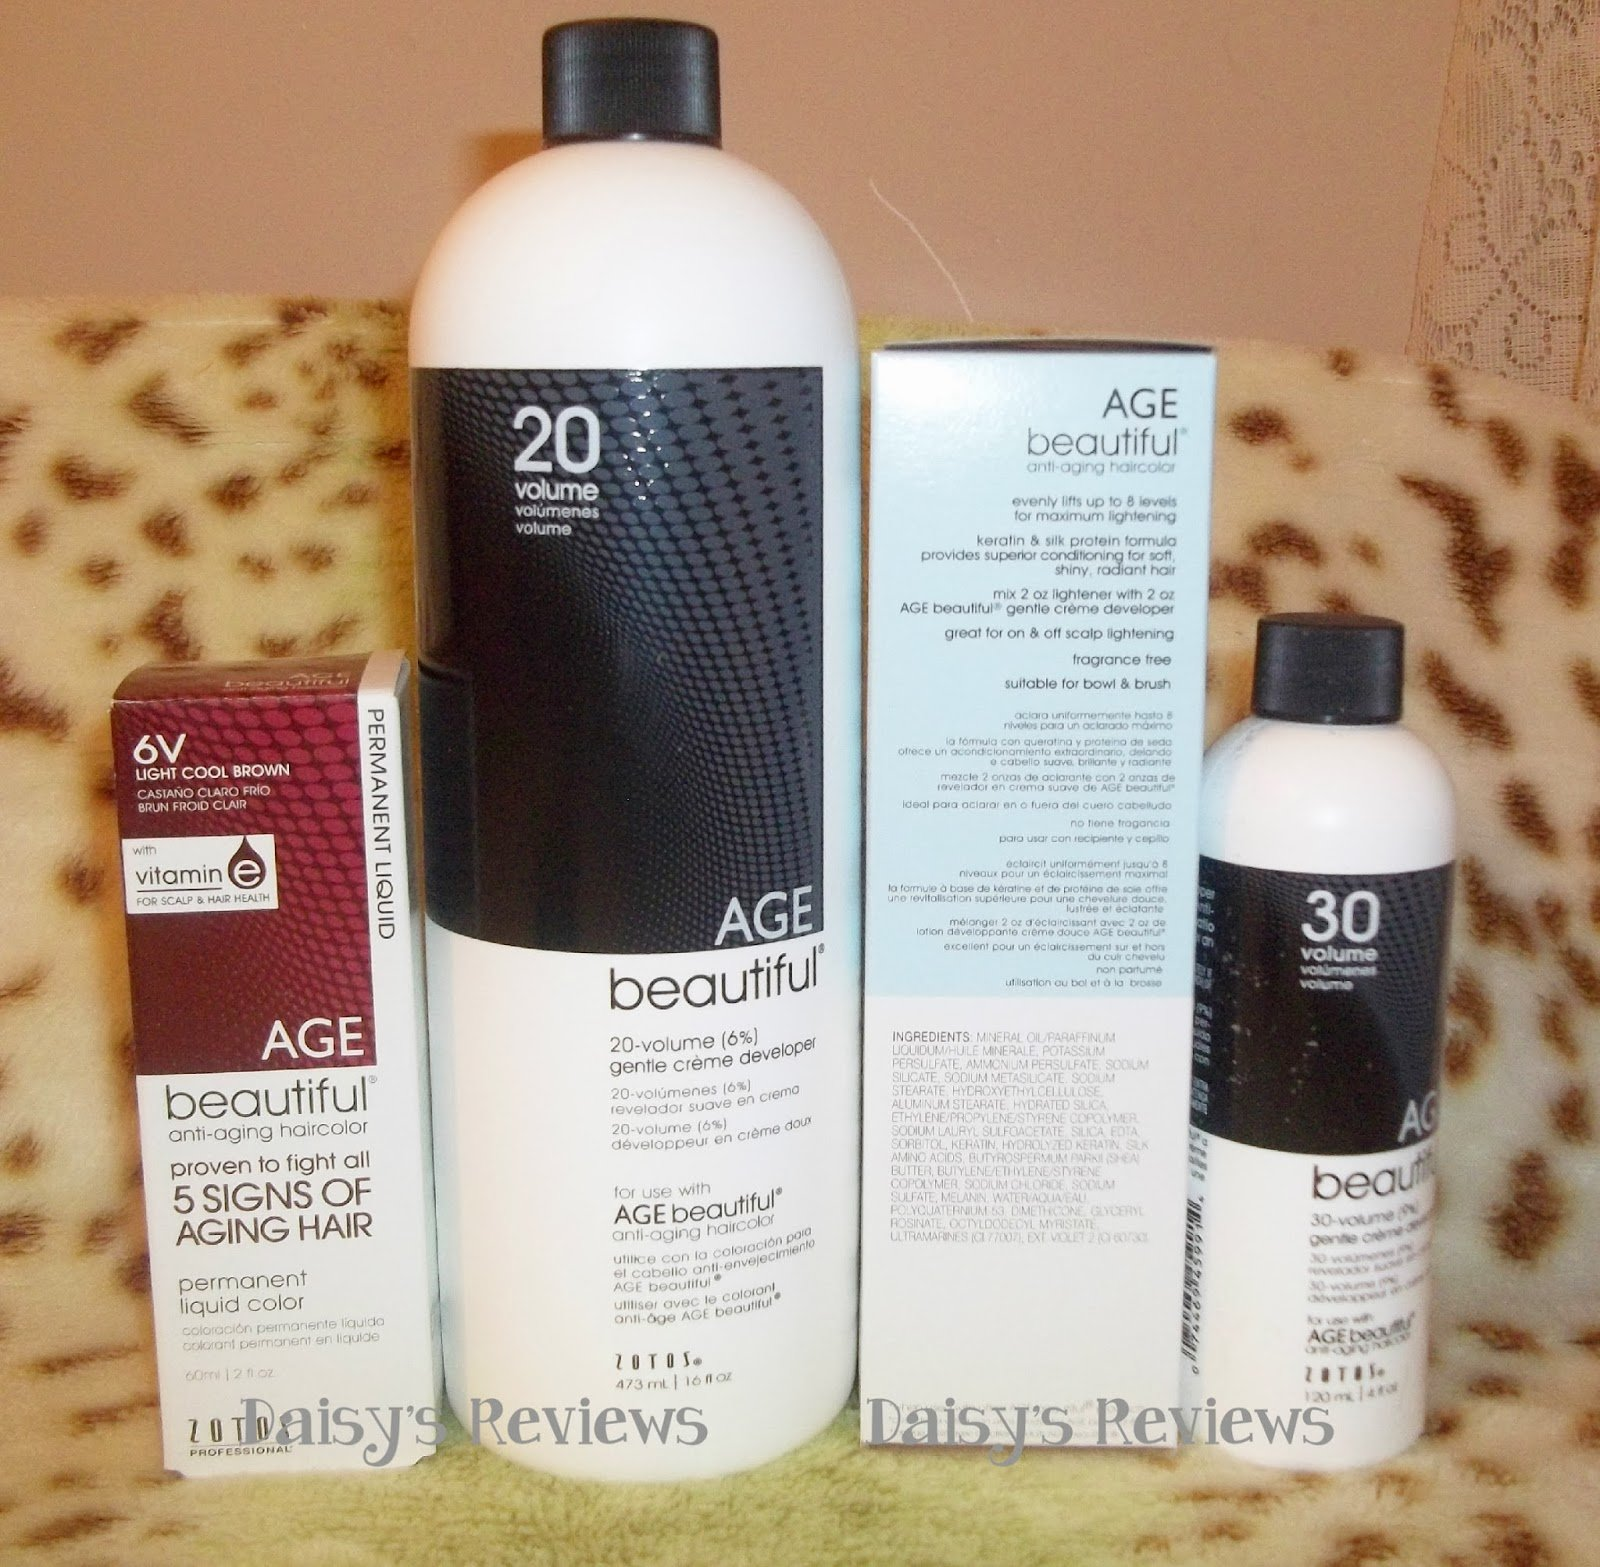 The Best Welcome To Daisy S Reviews Agebeautiful Haircolor Review Pictures